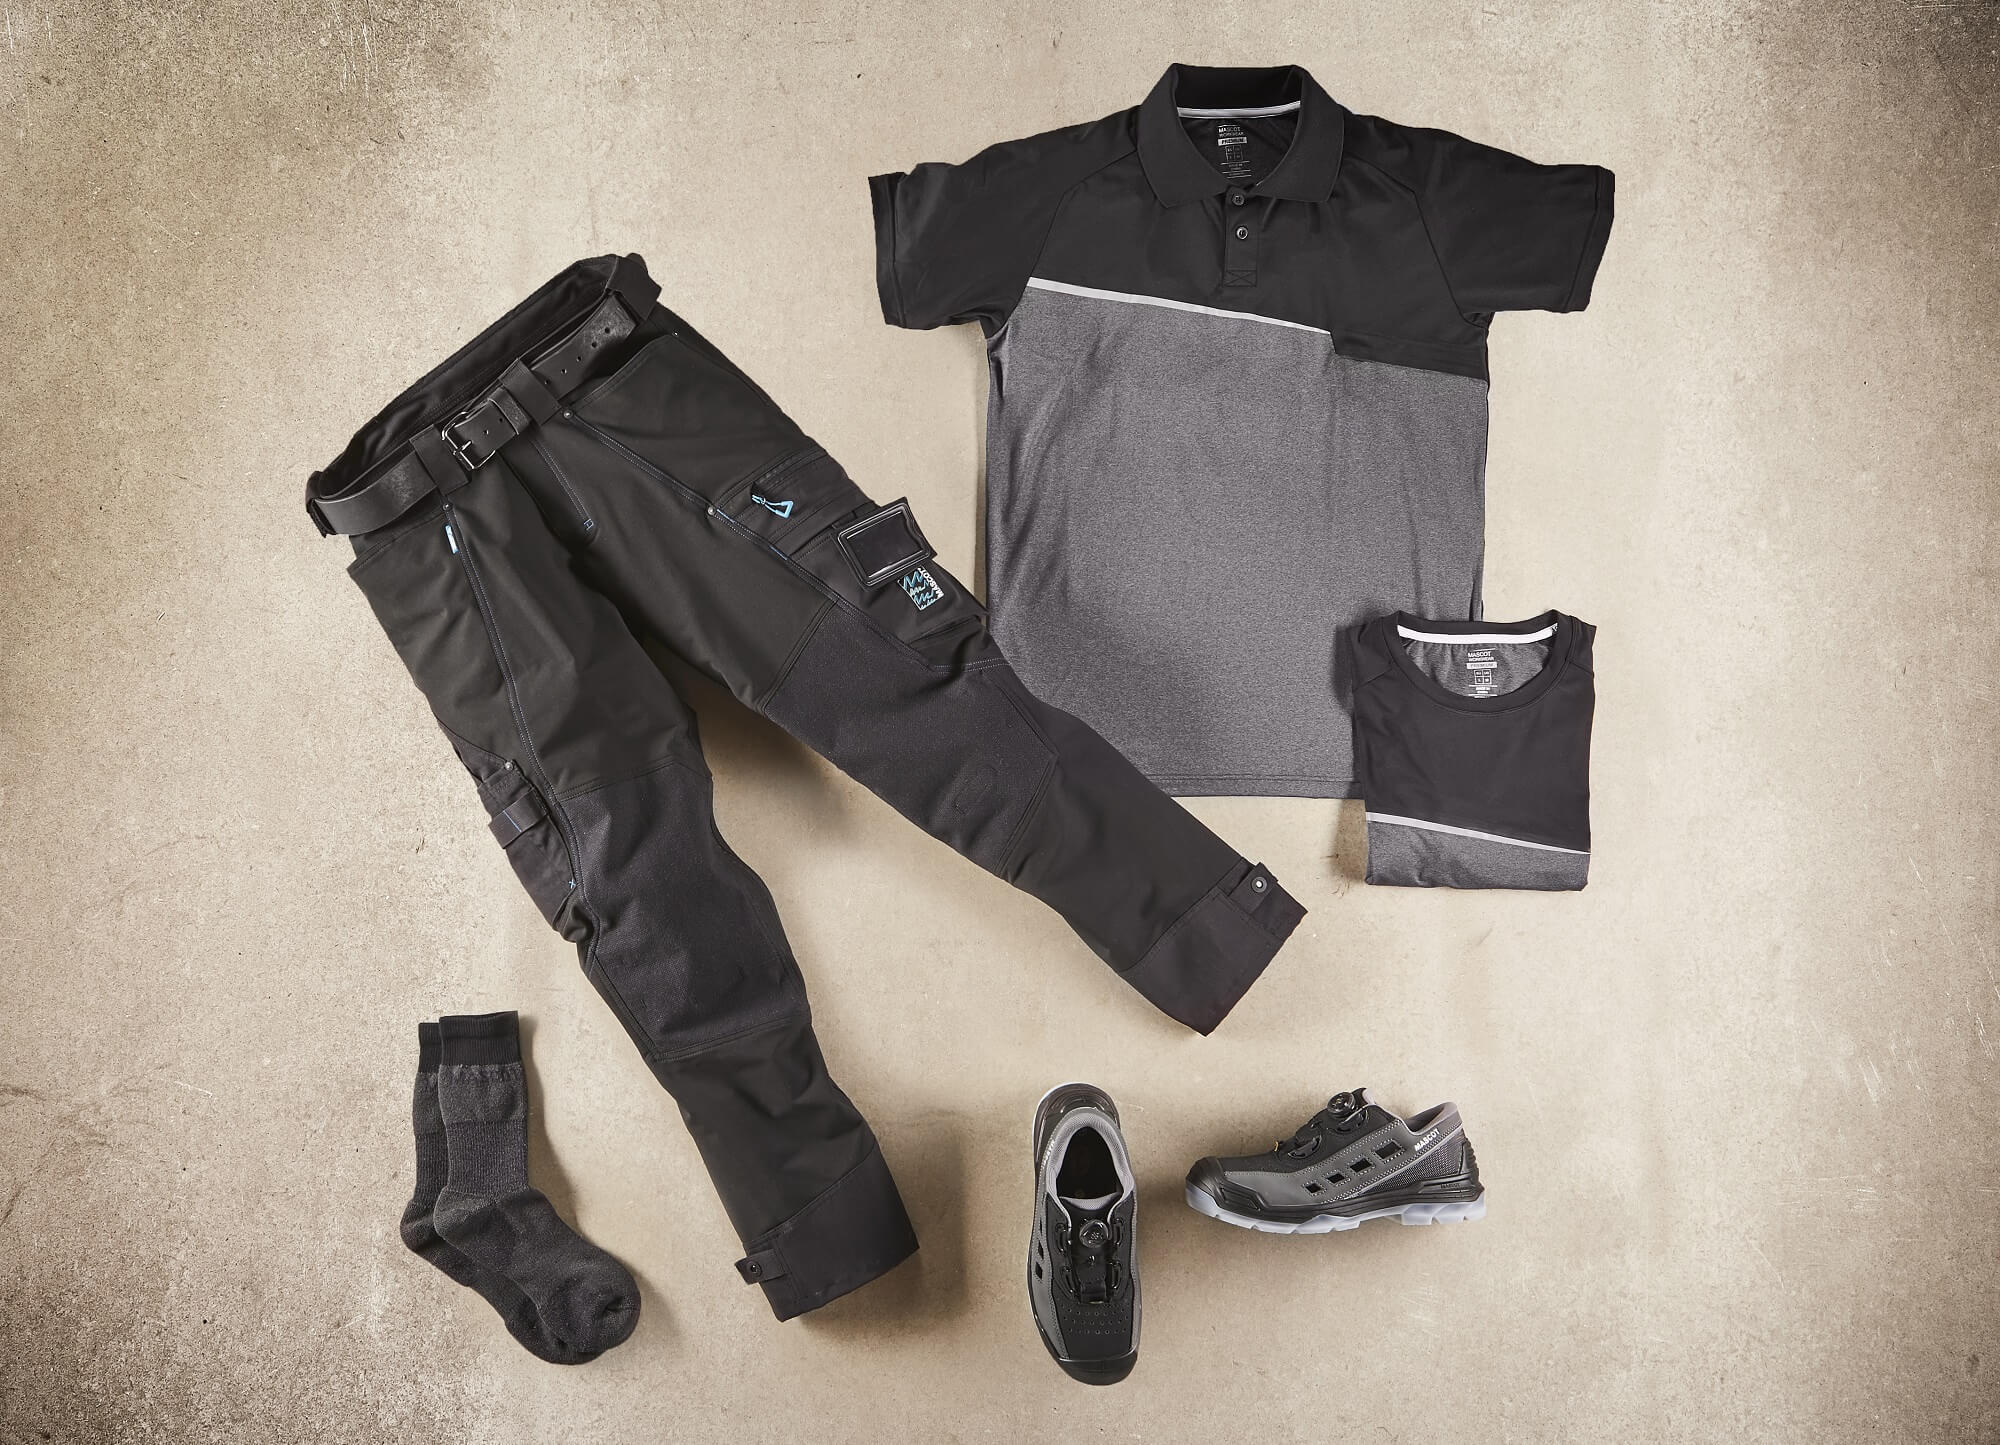 Black - Work Polo Shirt, Trousers, Safety Sandal & Socks - Collage